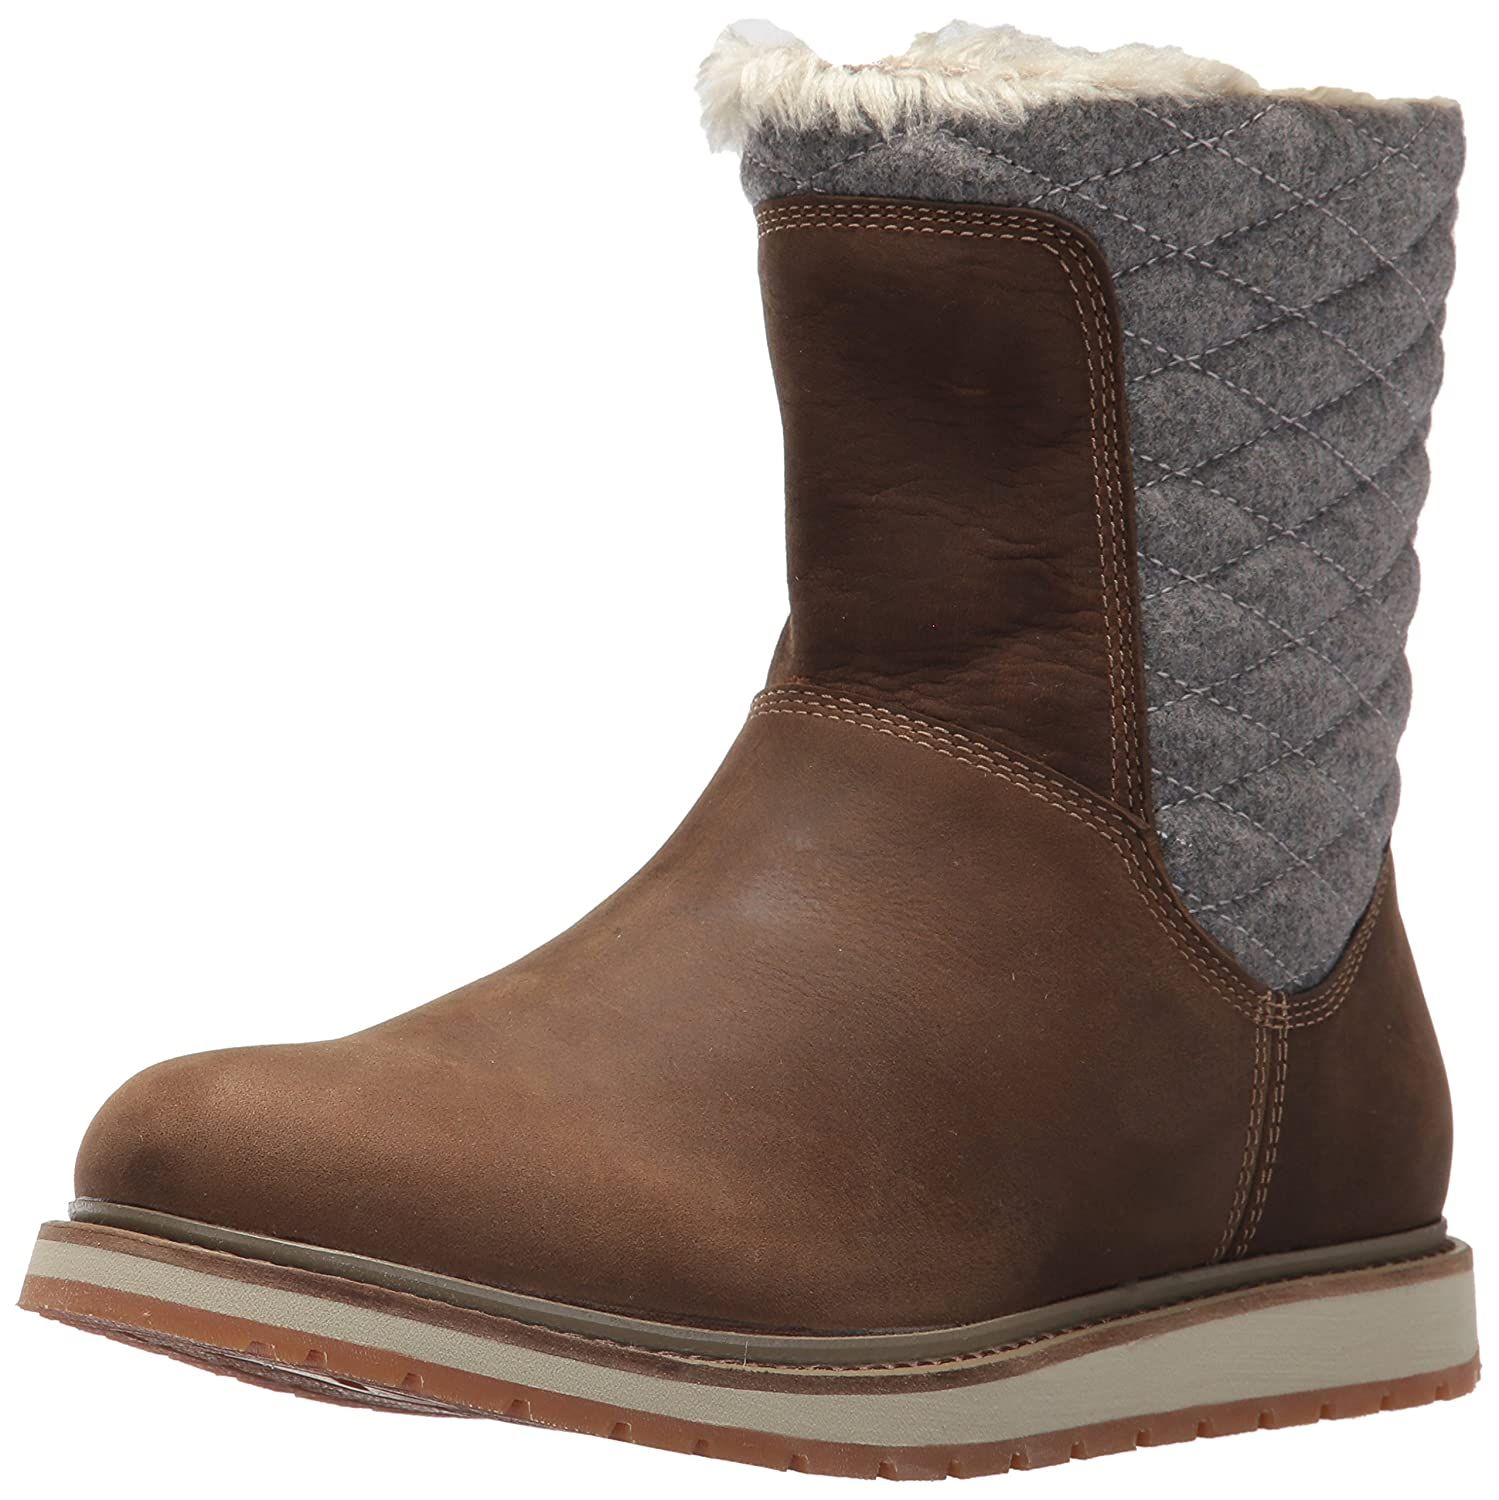 Helly Hansen Women's Seraphina Winter Boot B01N5XS0C0 6 B(M) US|Oatmeal/Natura/Cement